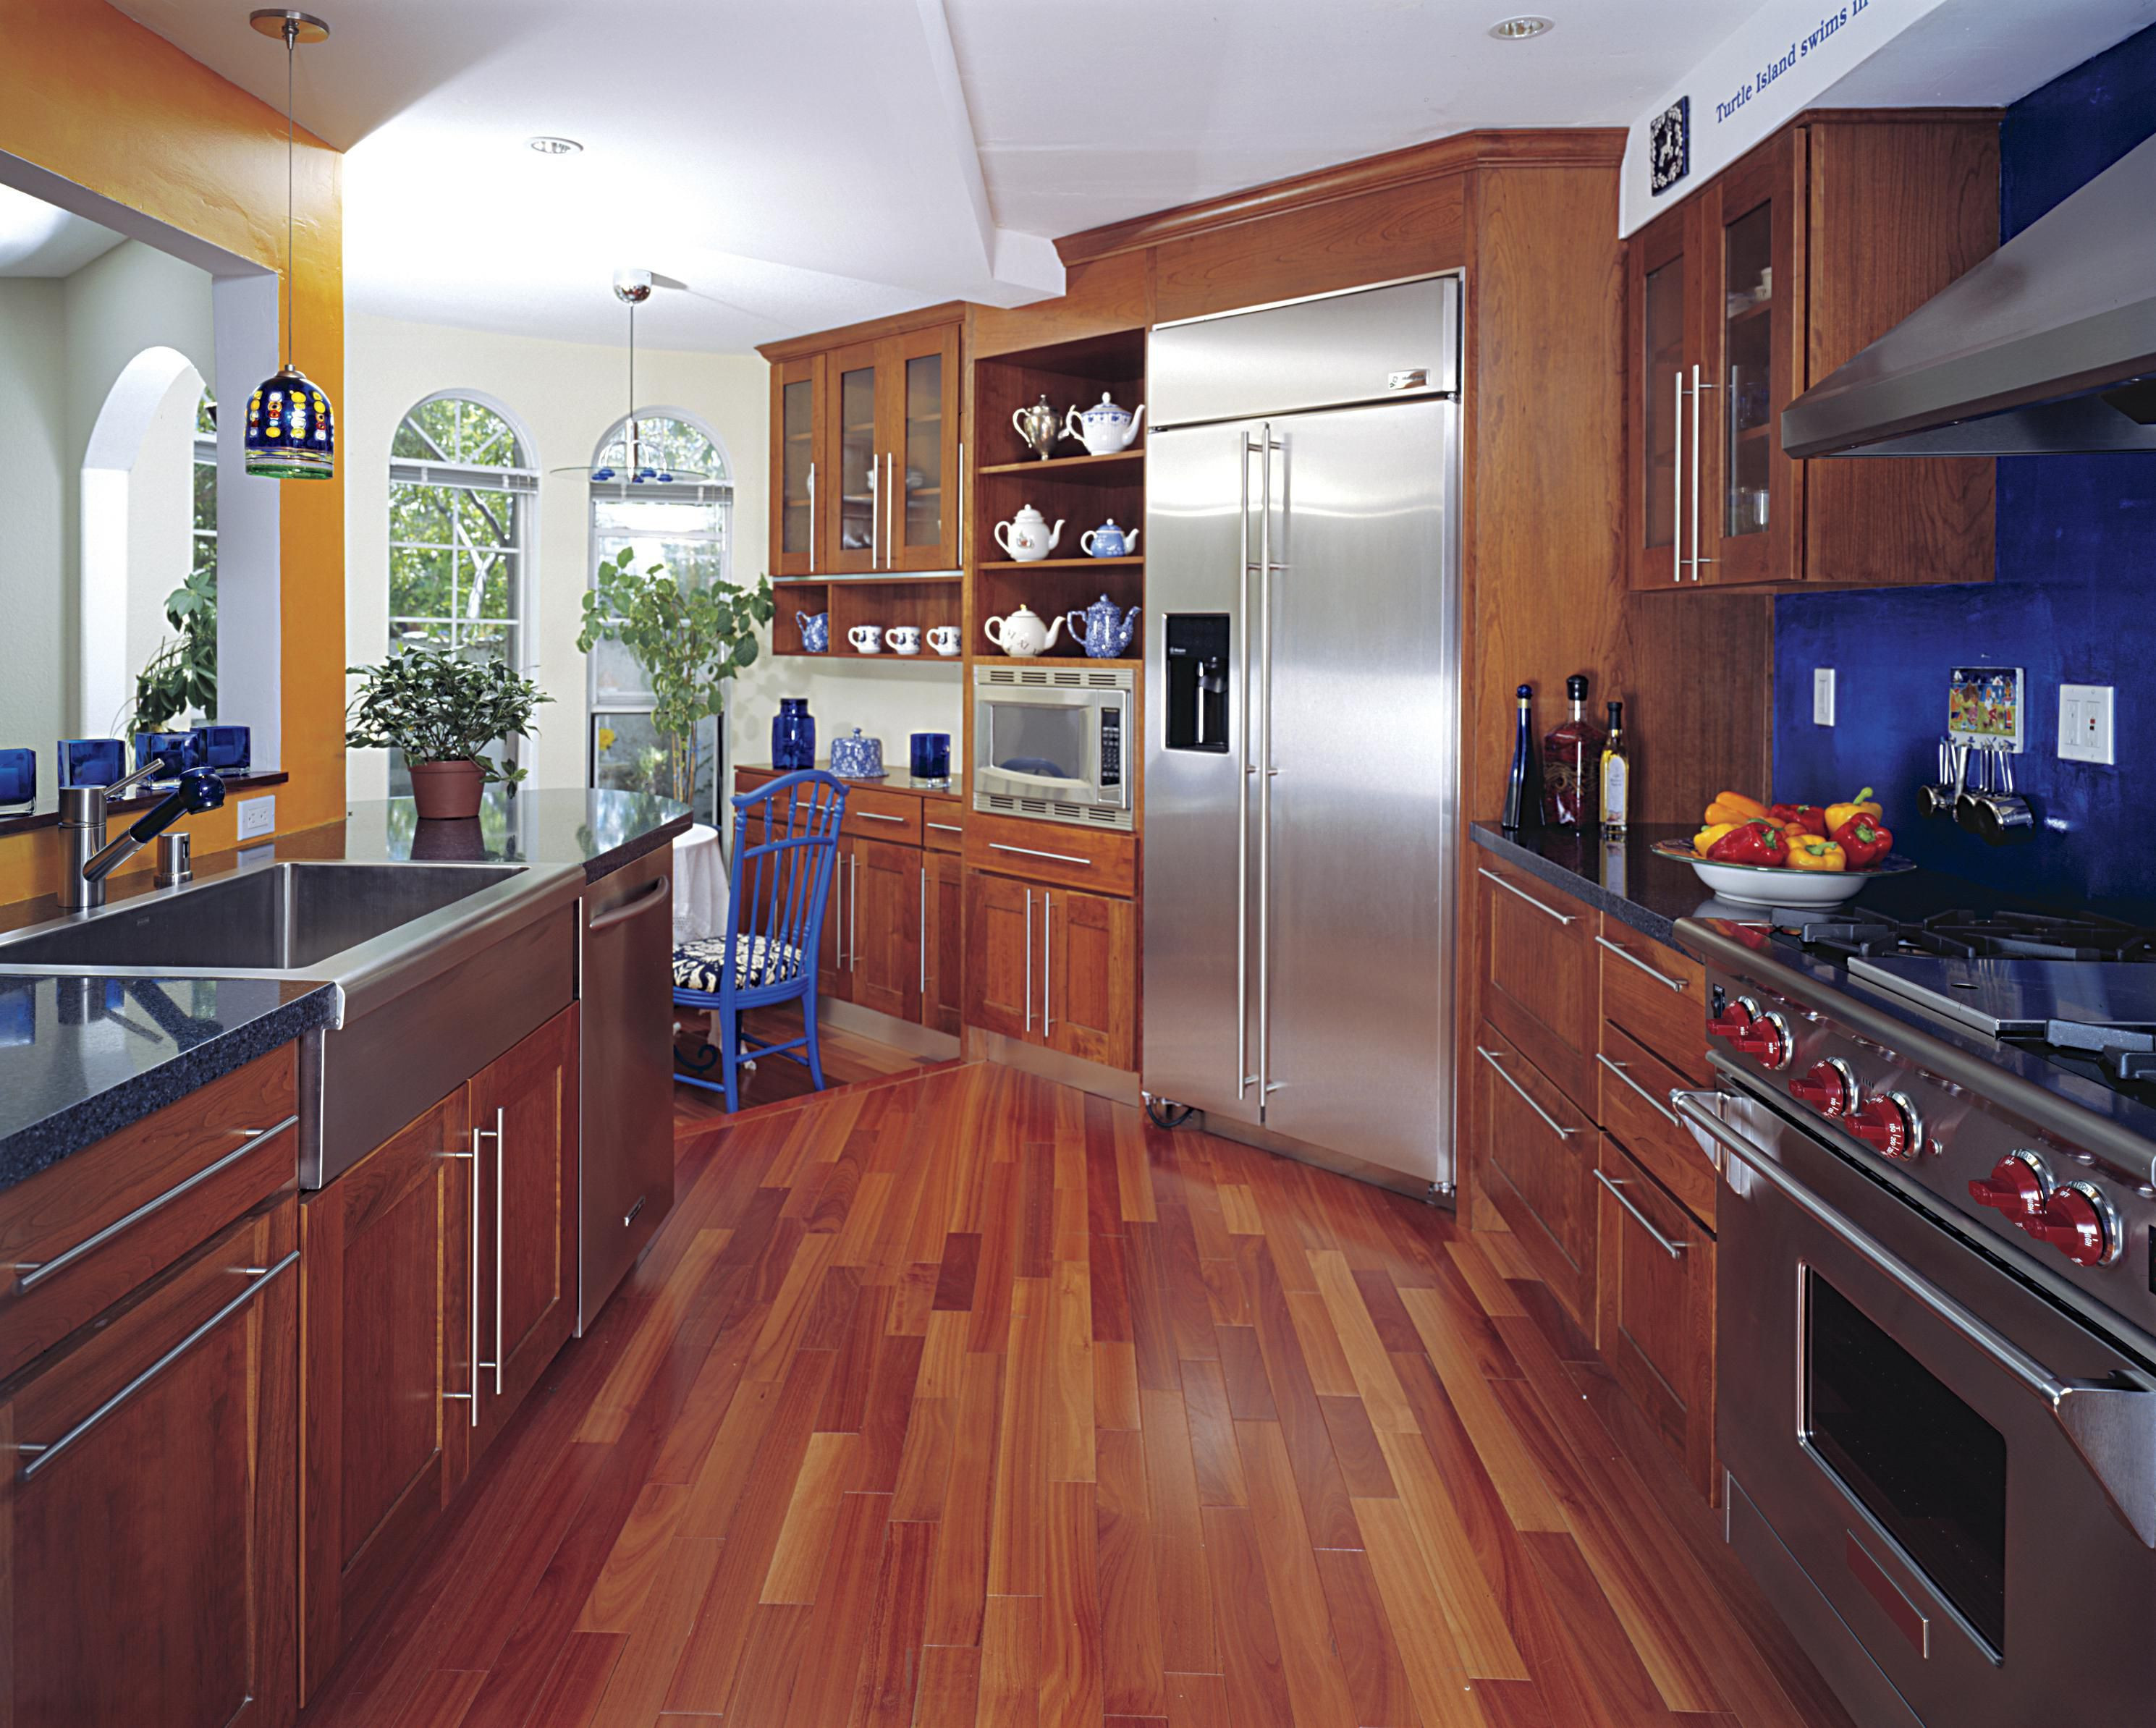 dark stained oak hardwood floors of hardwood floor in a kitchen is this allowed with 186828472 56a49f3a5f9b58b7d0d7e142